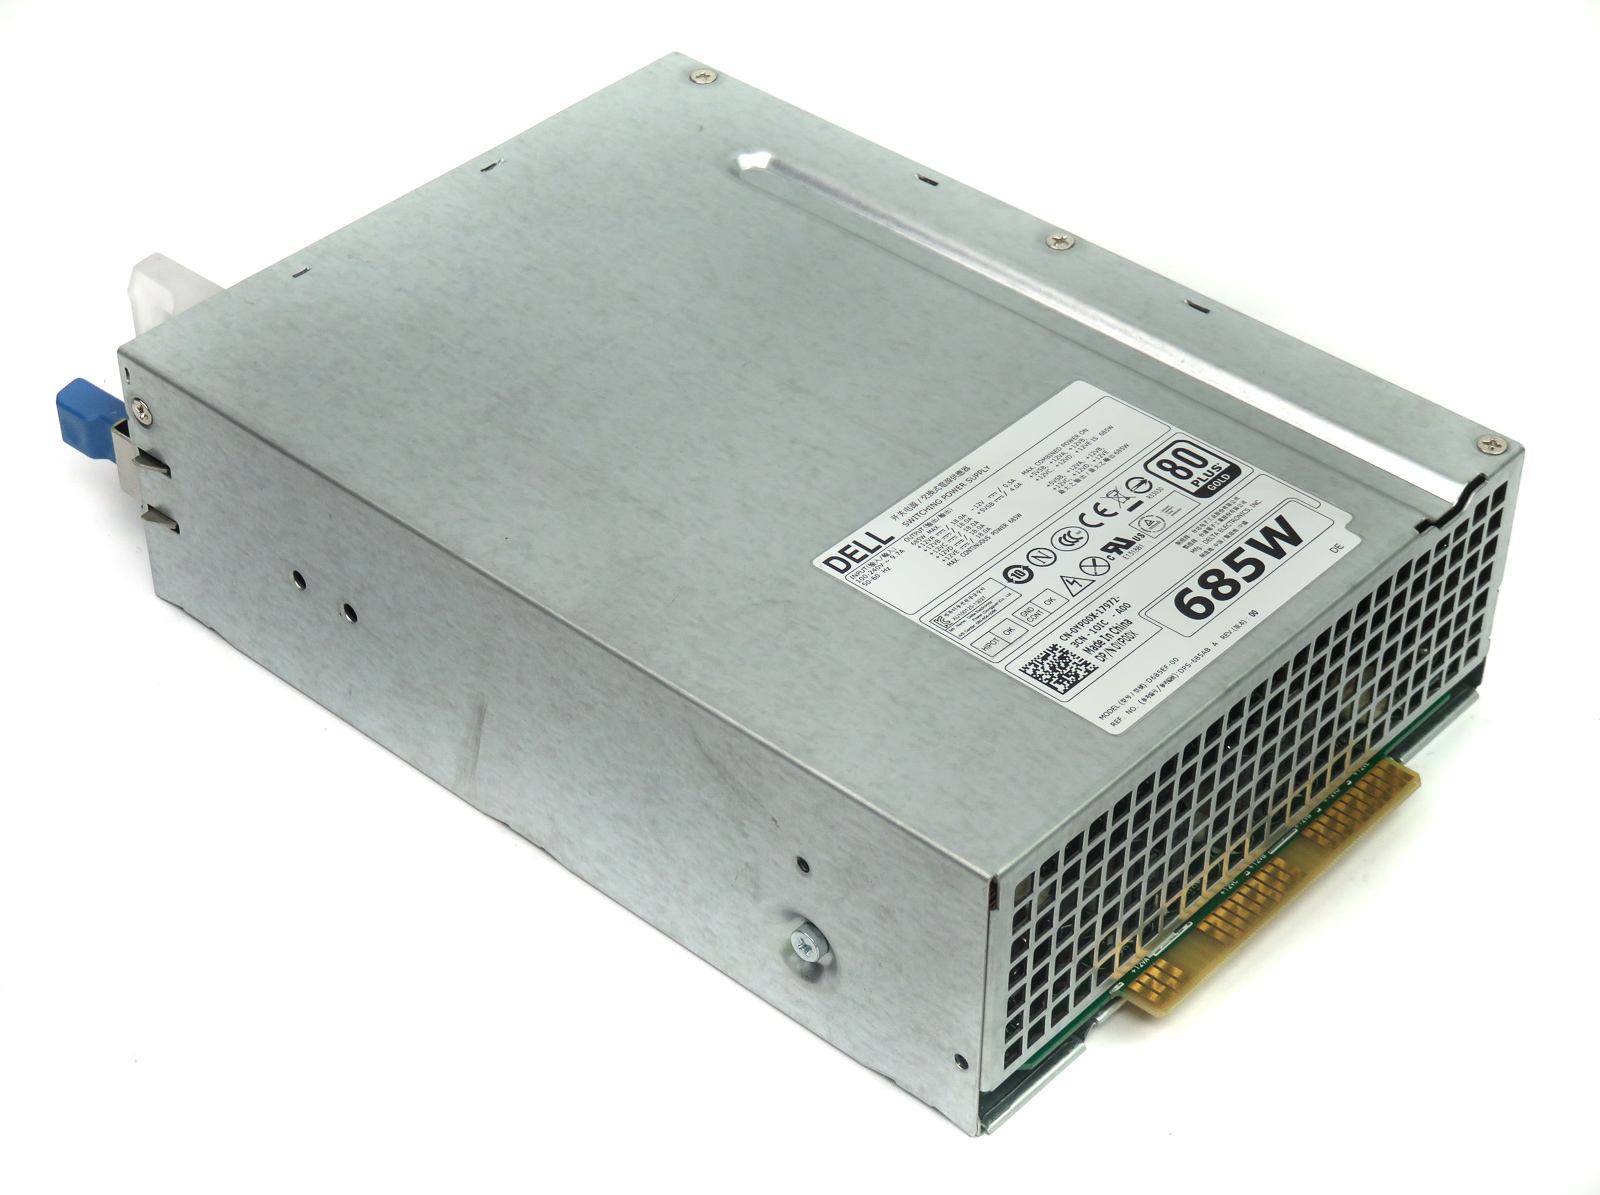 YP00X 0YP00X Dell Precision Tower 3610 685W Power Supply Unit D685EF-00